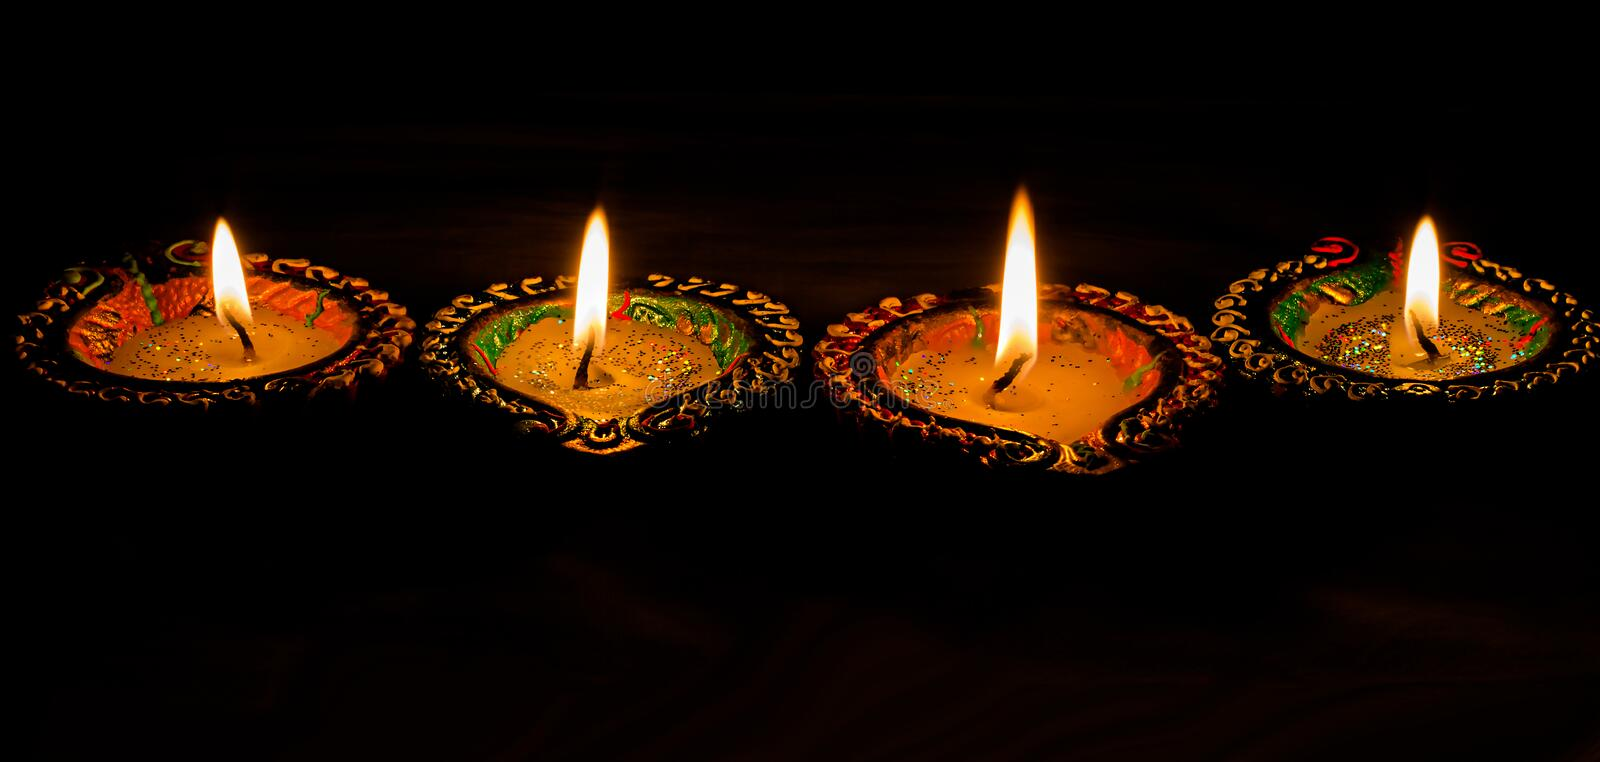 Four burning colorful candles indian style for Diwali celebration on black background. Vertical royalty free stock photos